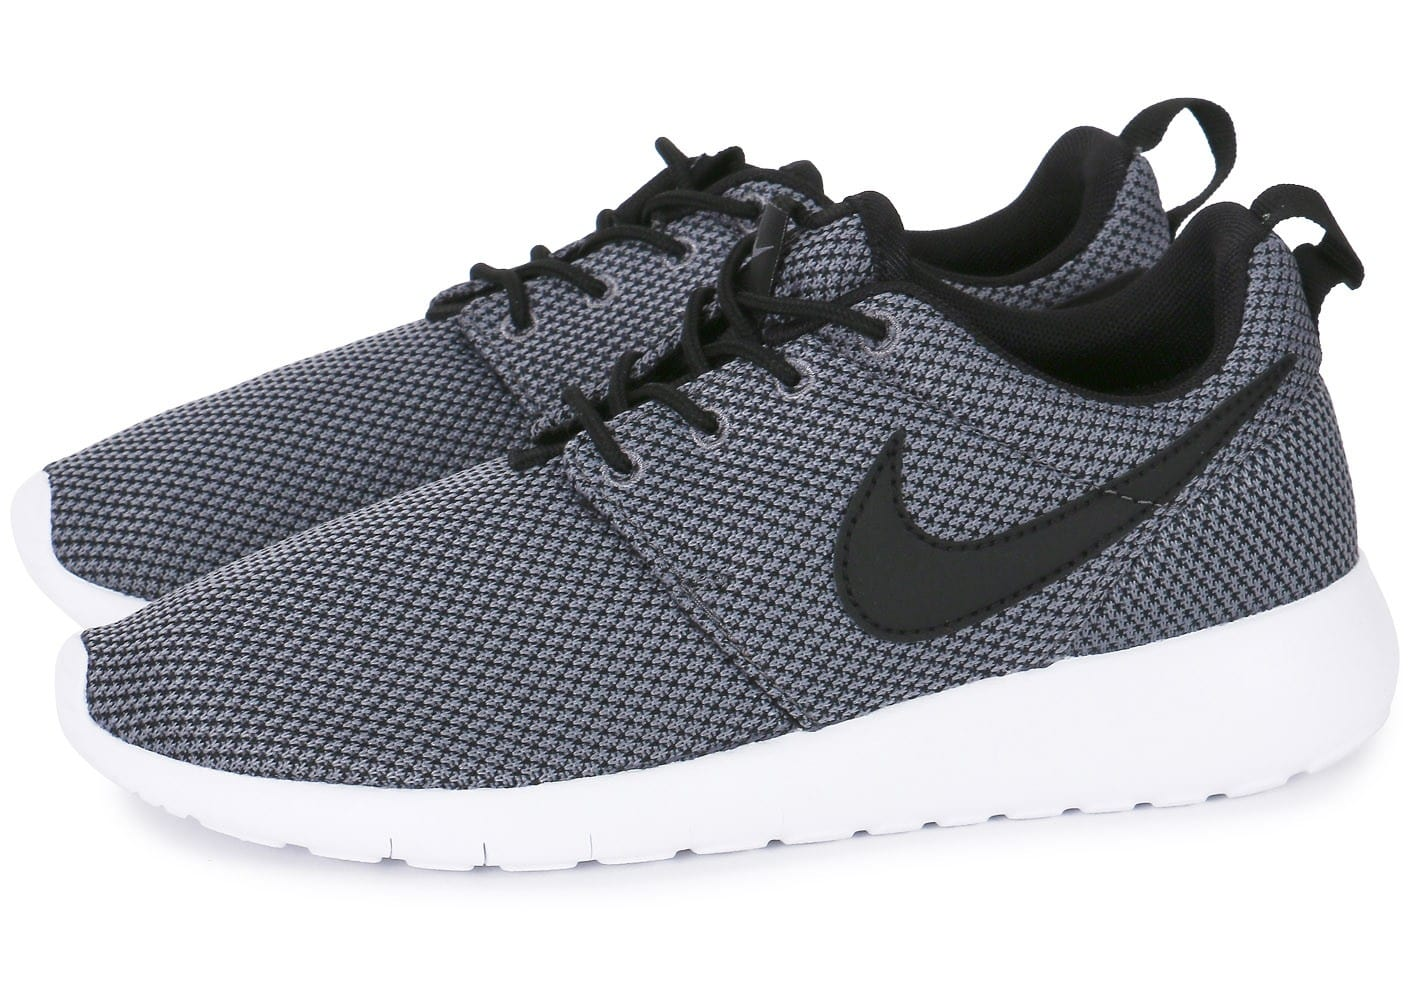 Nike Roshe Chaussures One Junior Grise Chaussures Chaussures Roshe Chausport 1fa035